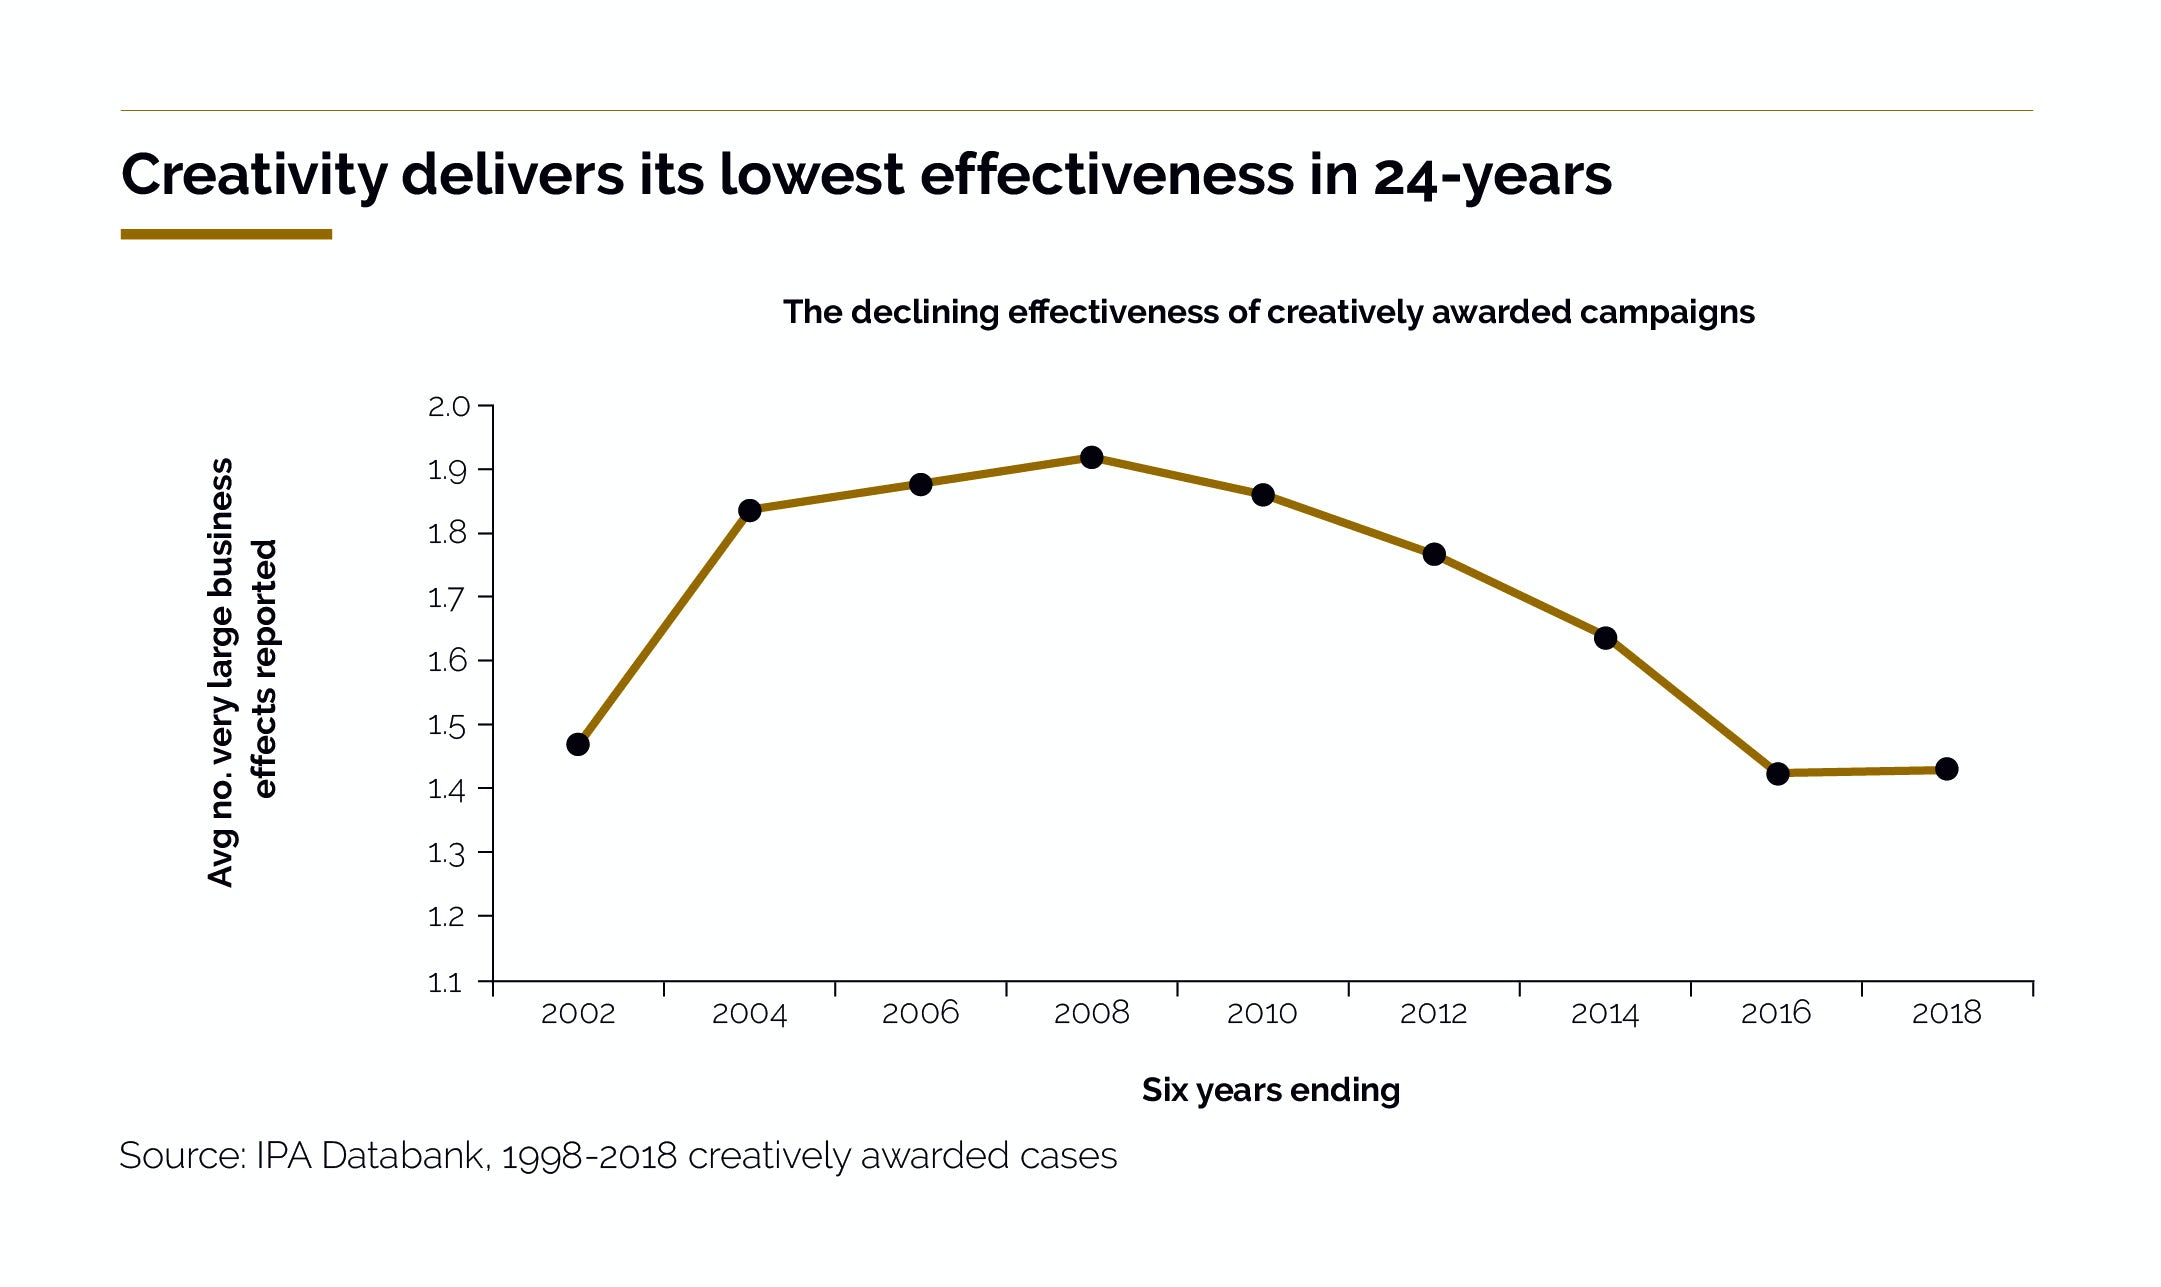 Crisis in creative effectiveness